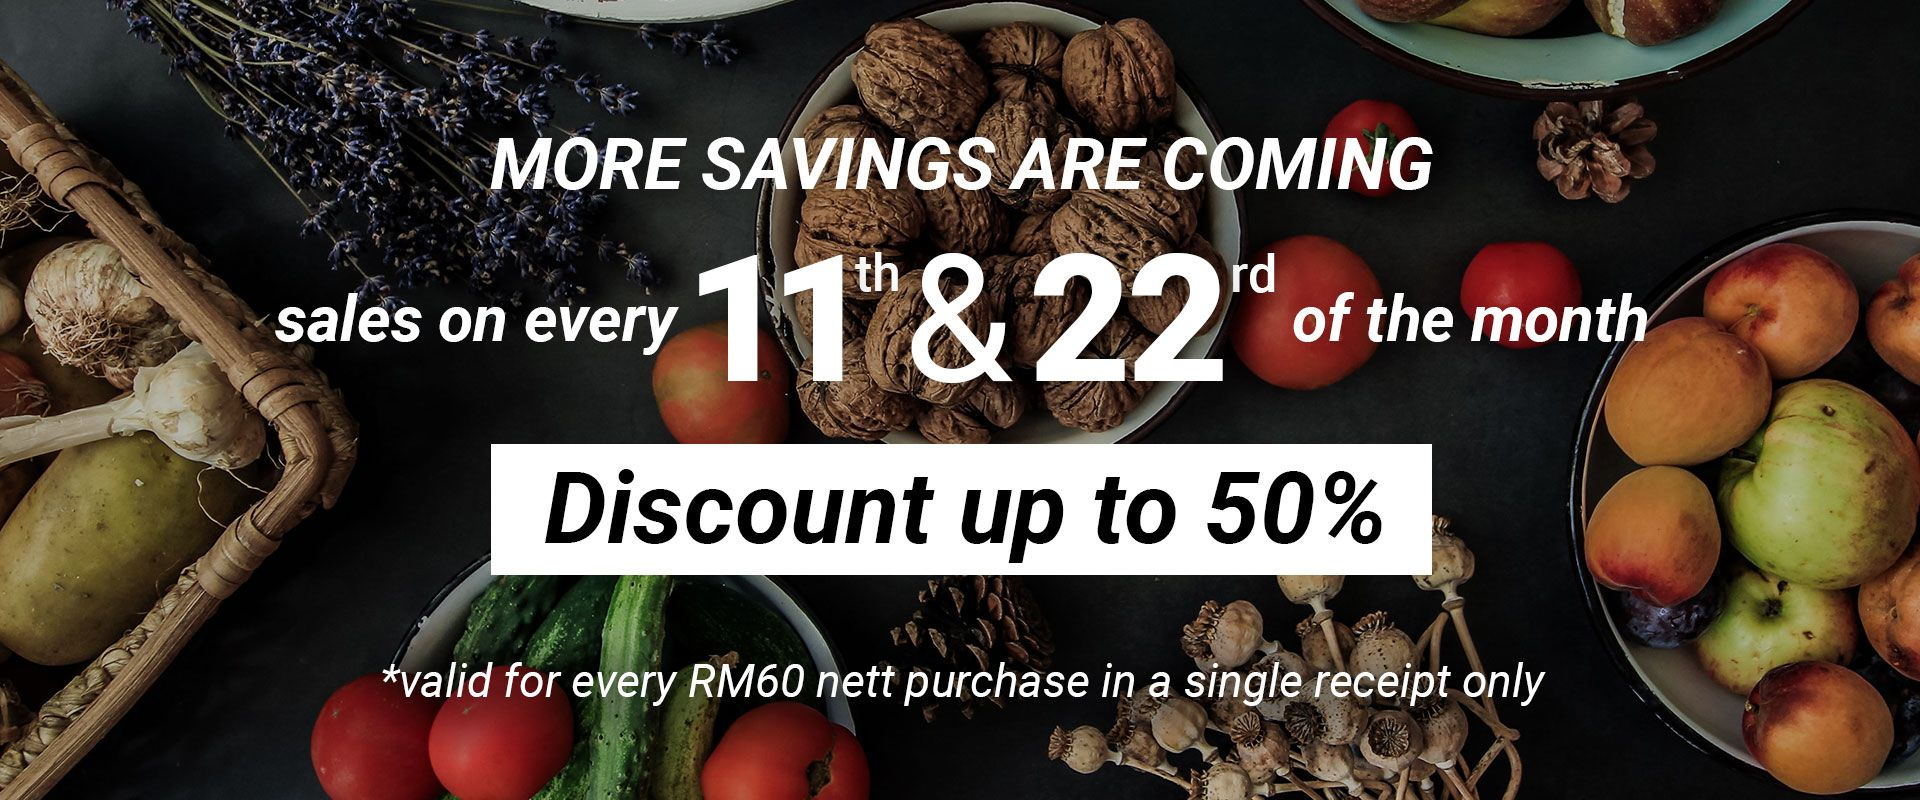 More Savings Are Coming